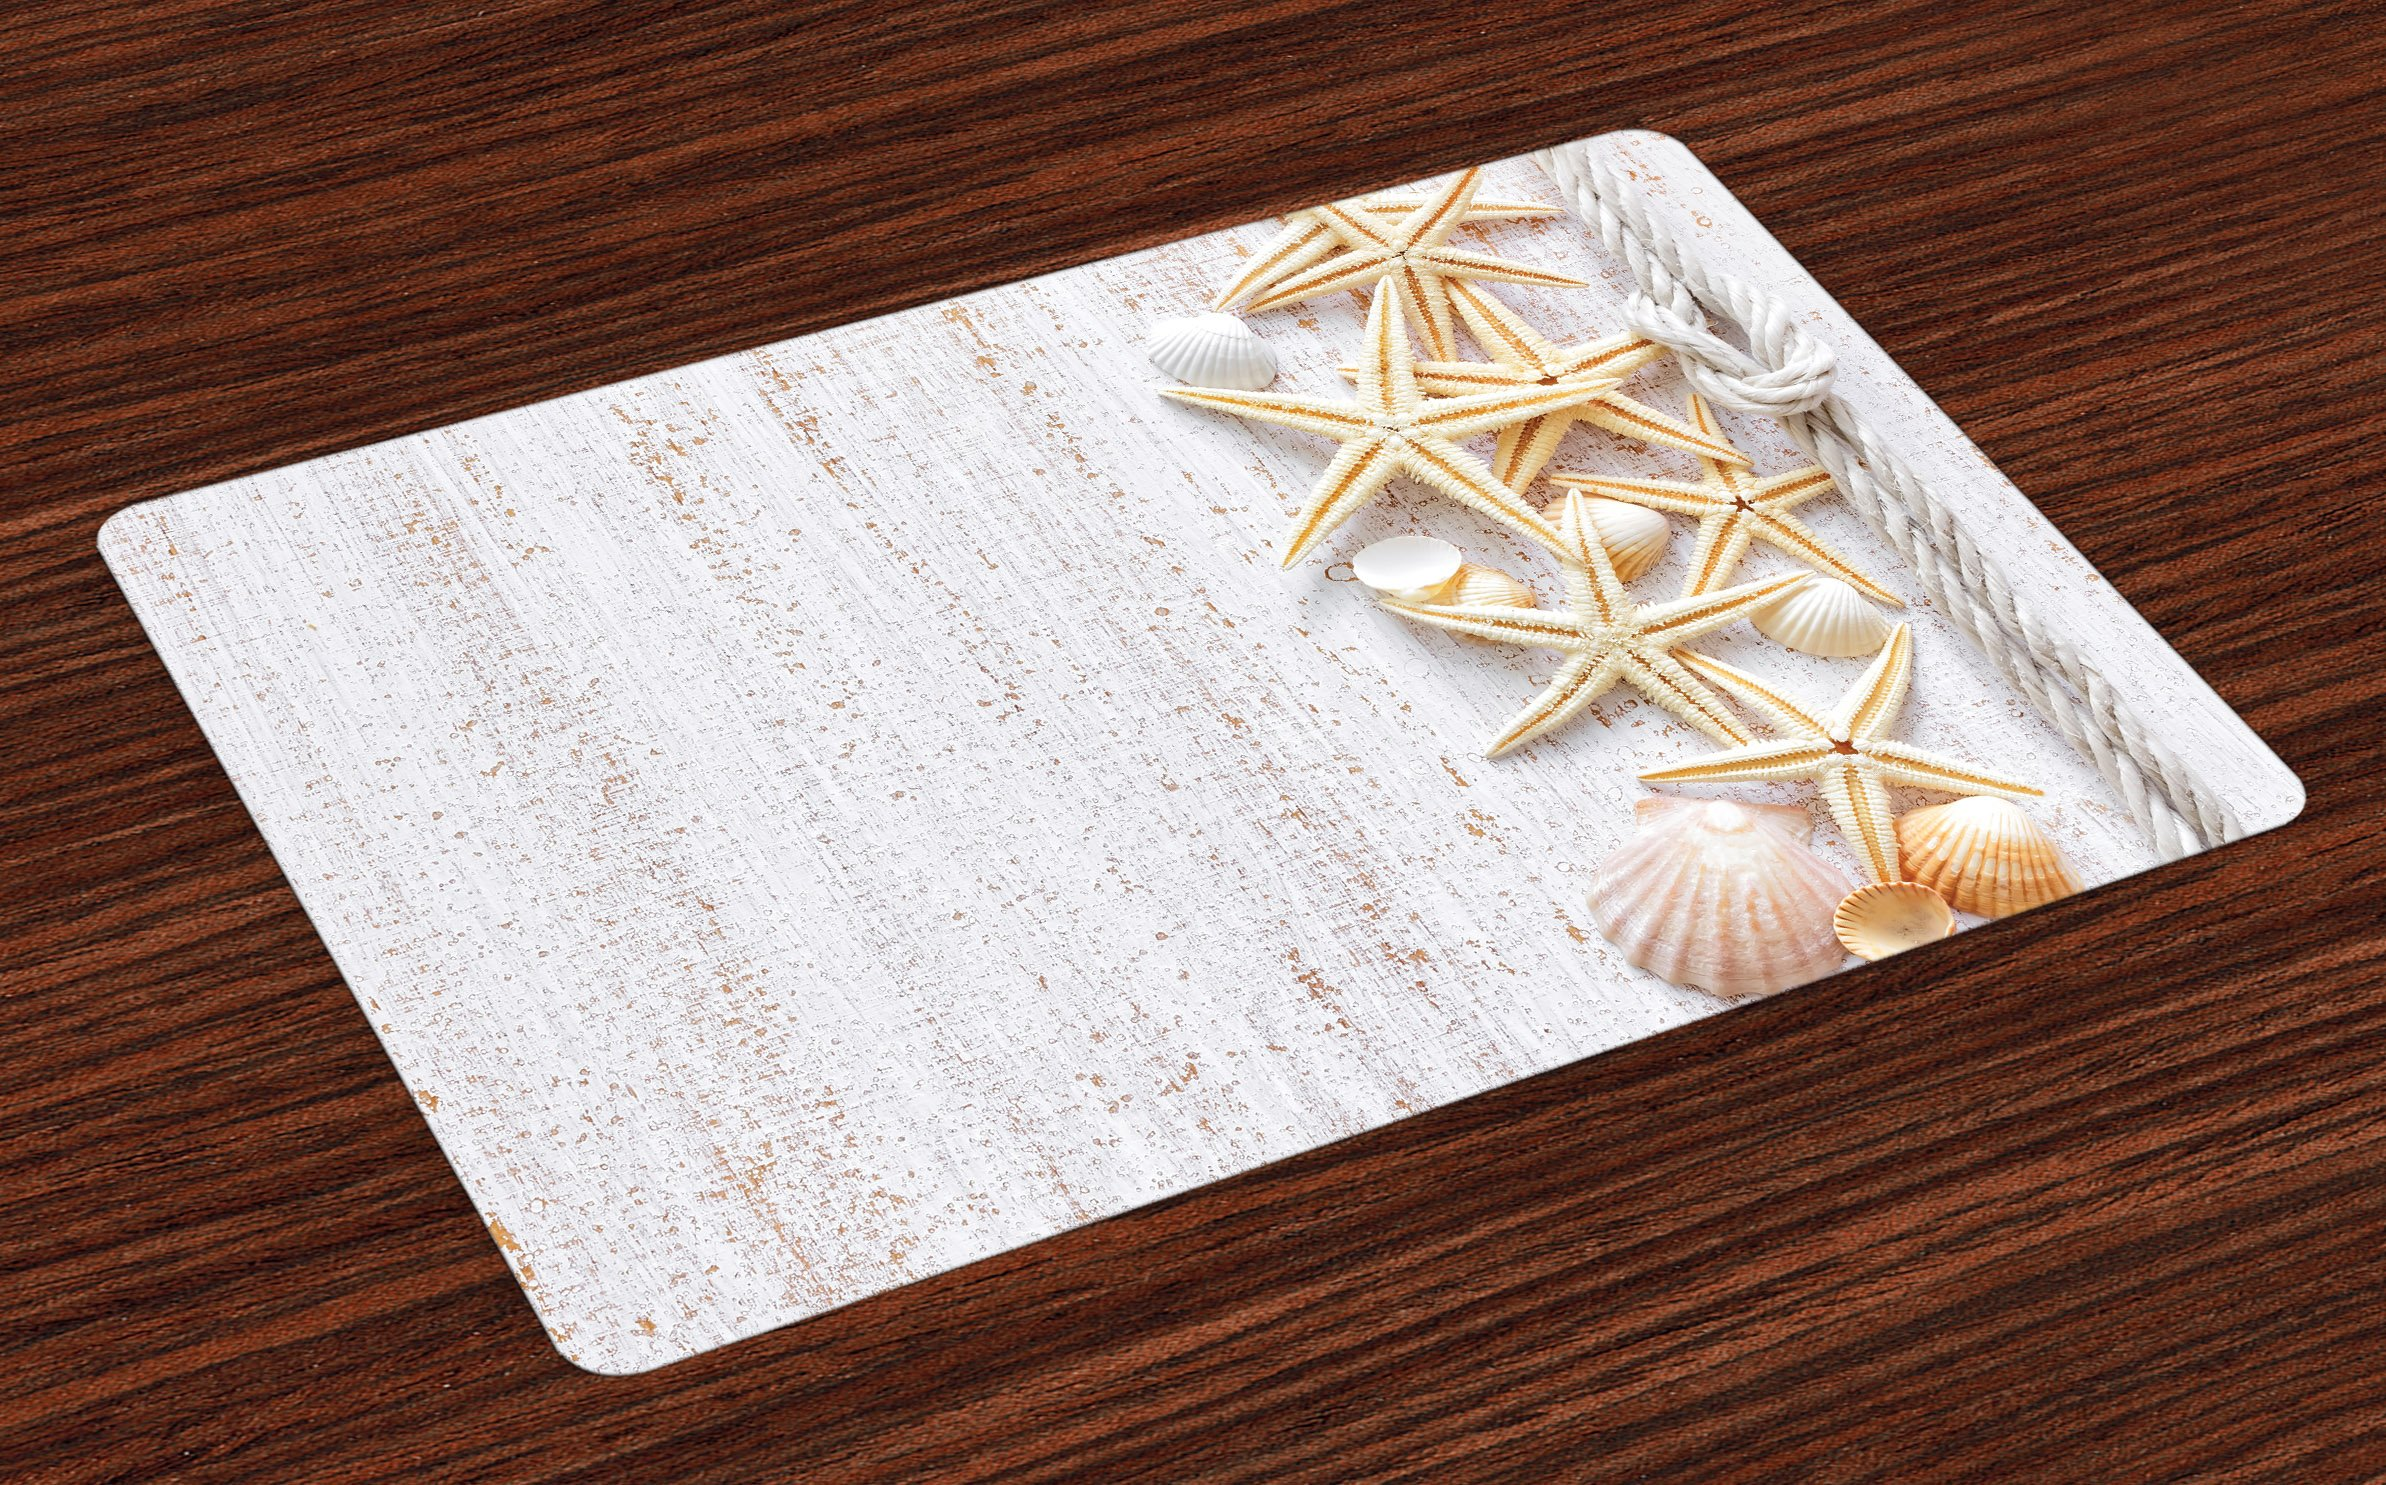 Ambesonne Seashells Place Mats Set of 4, Seashells and Starfish with Navy Rope in Vertical Direction Wood Print Ocean Beach, Washable Fabric Placemats for Dining Room Kitchen Table Decor, Ivory